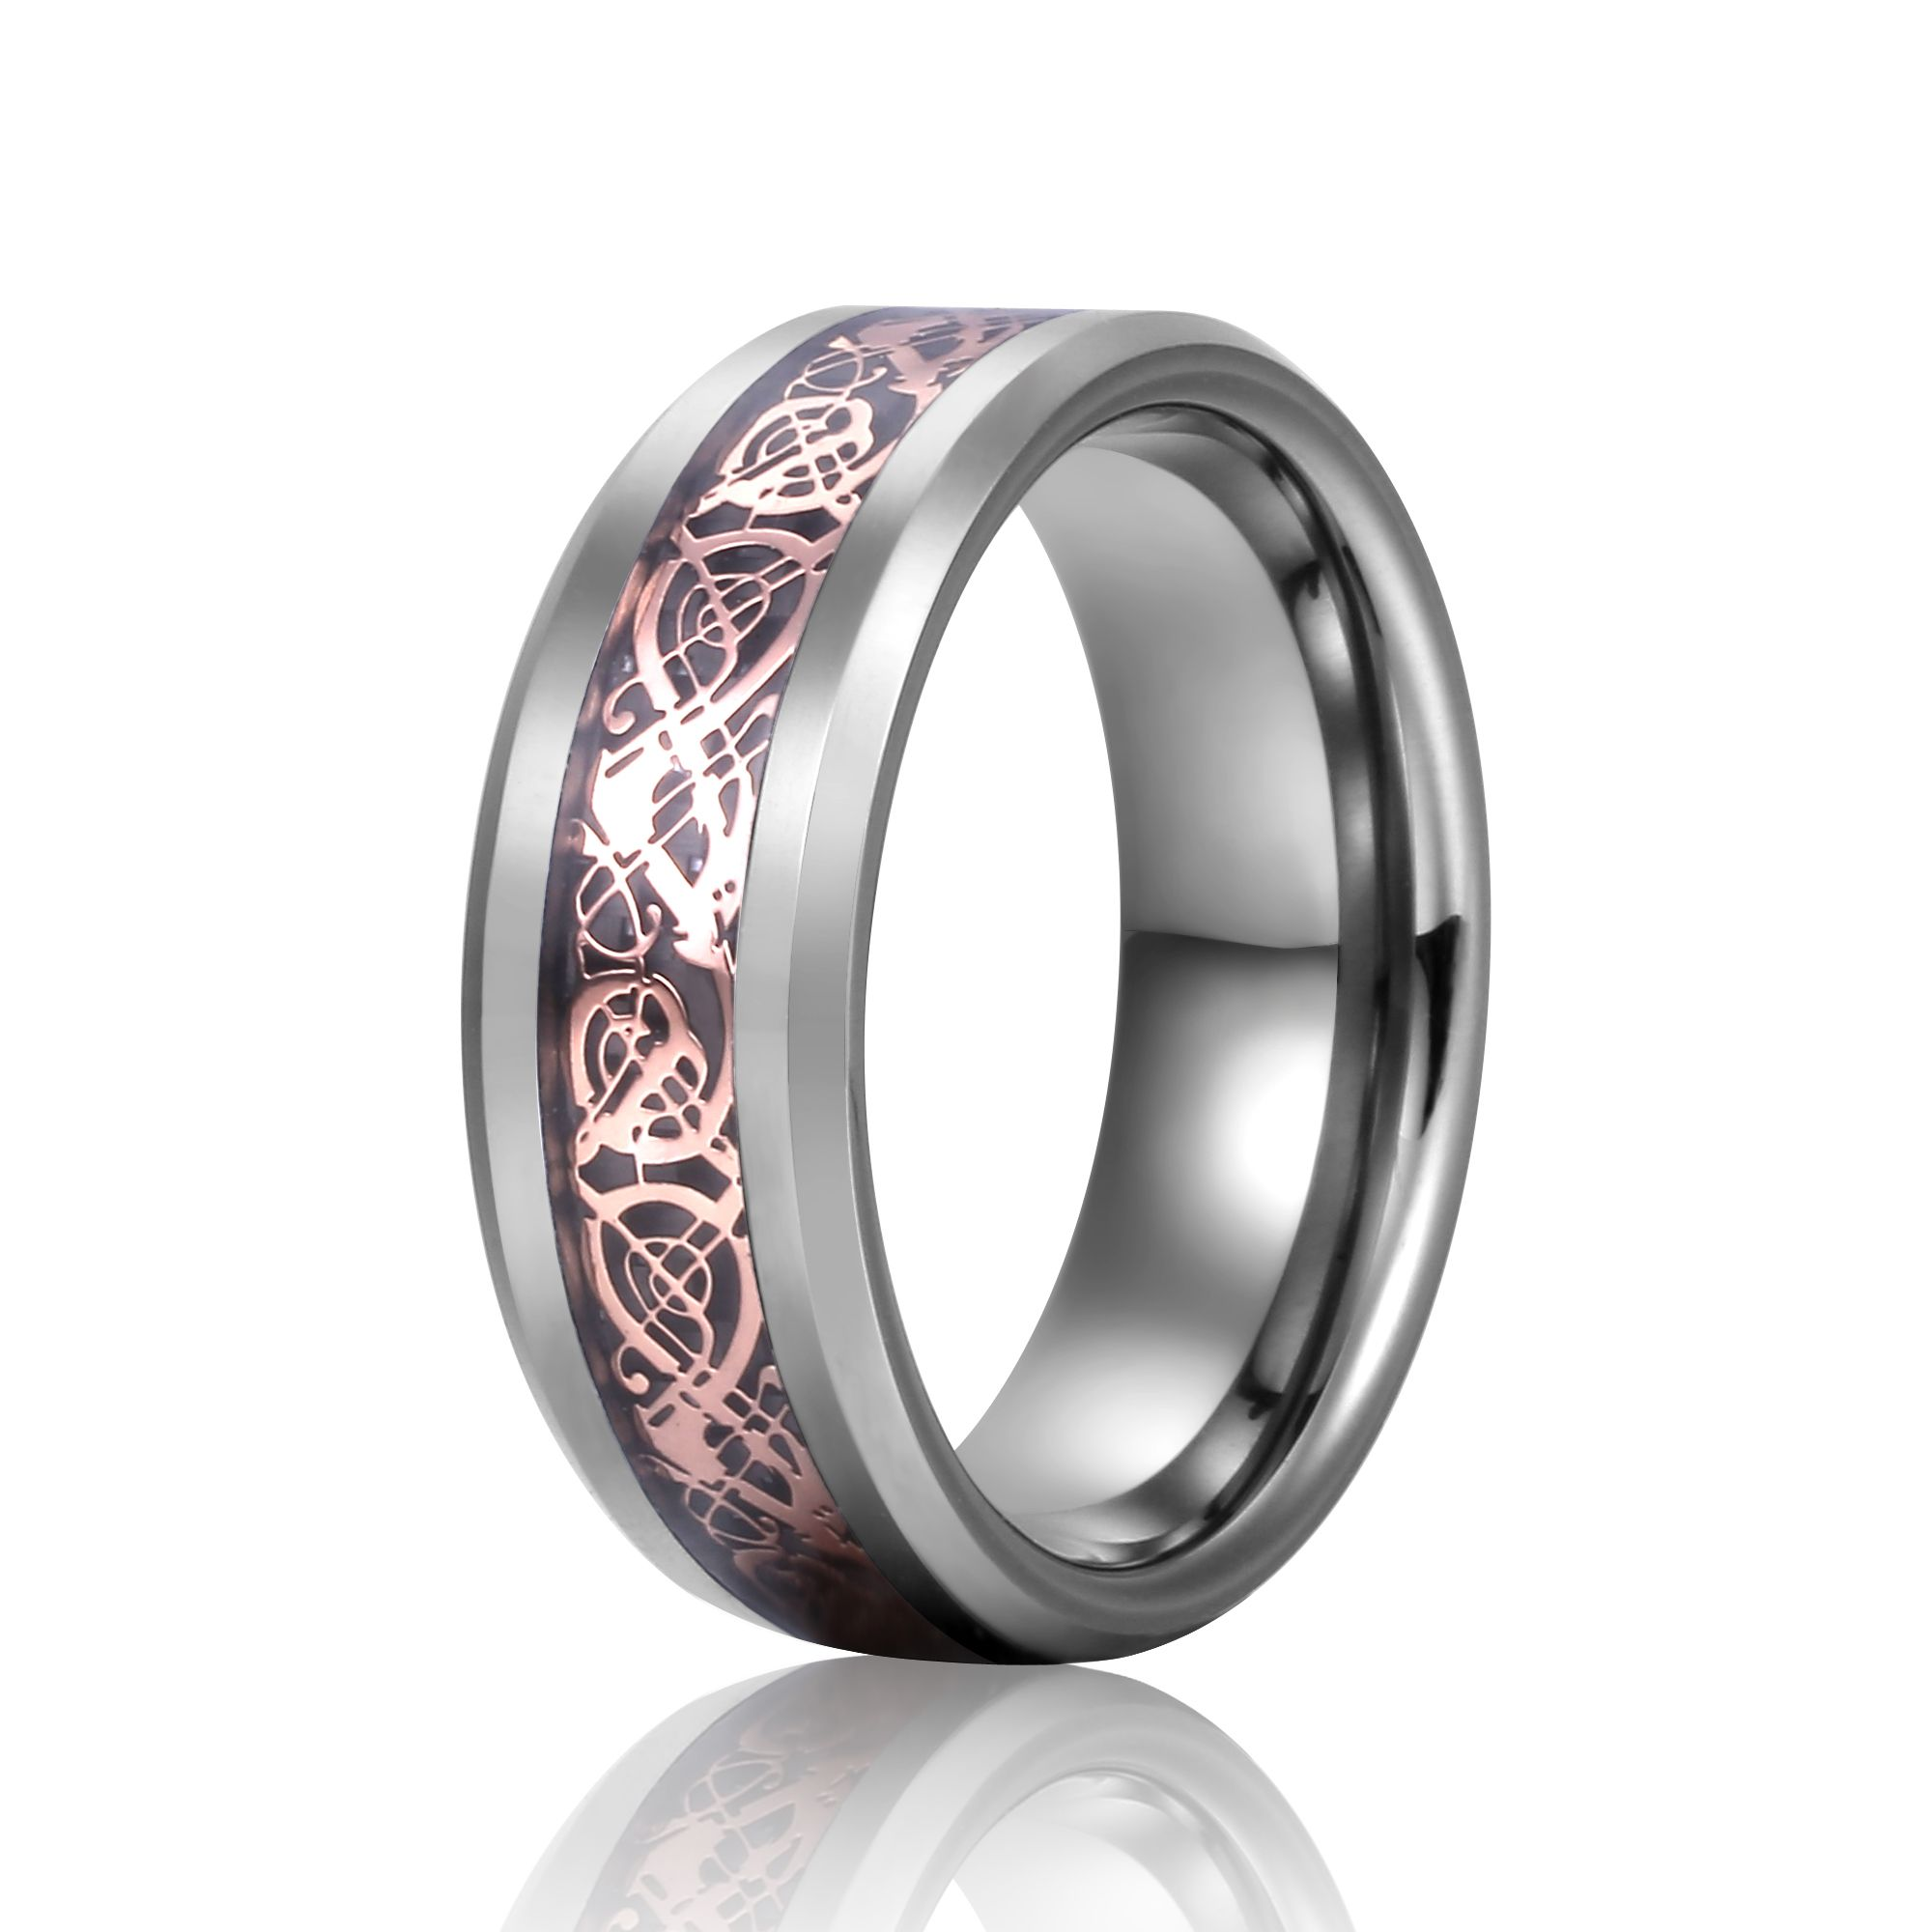 rings band him for firefighter mens fresh sweet corners bands white wedding camo hunting camouflage looking download